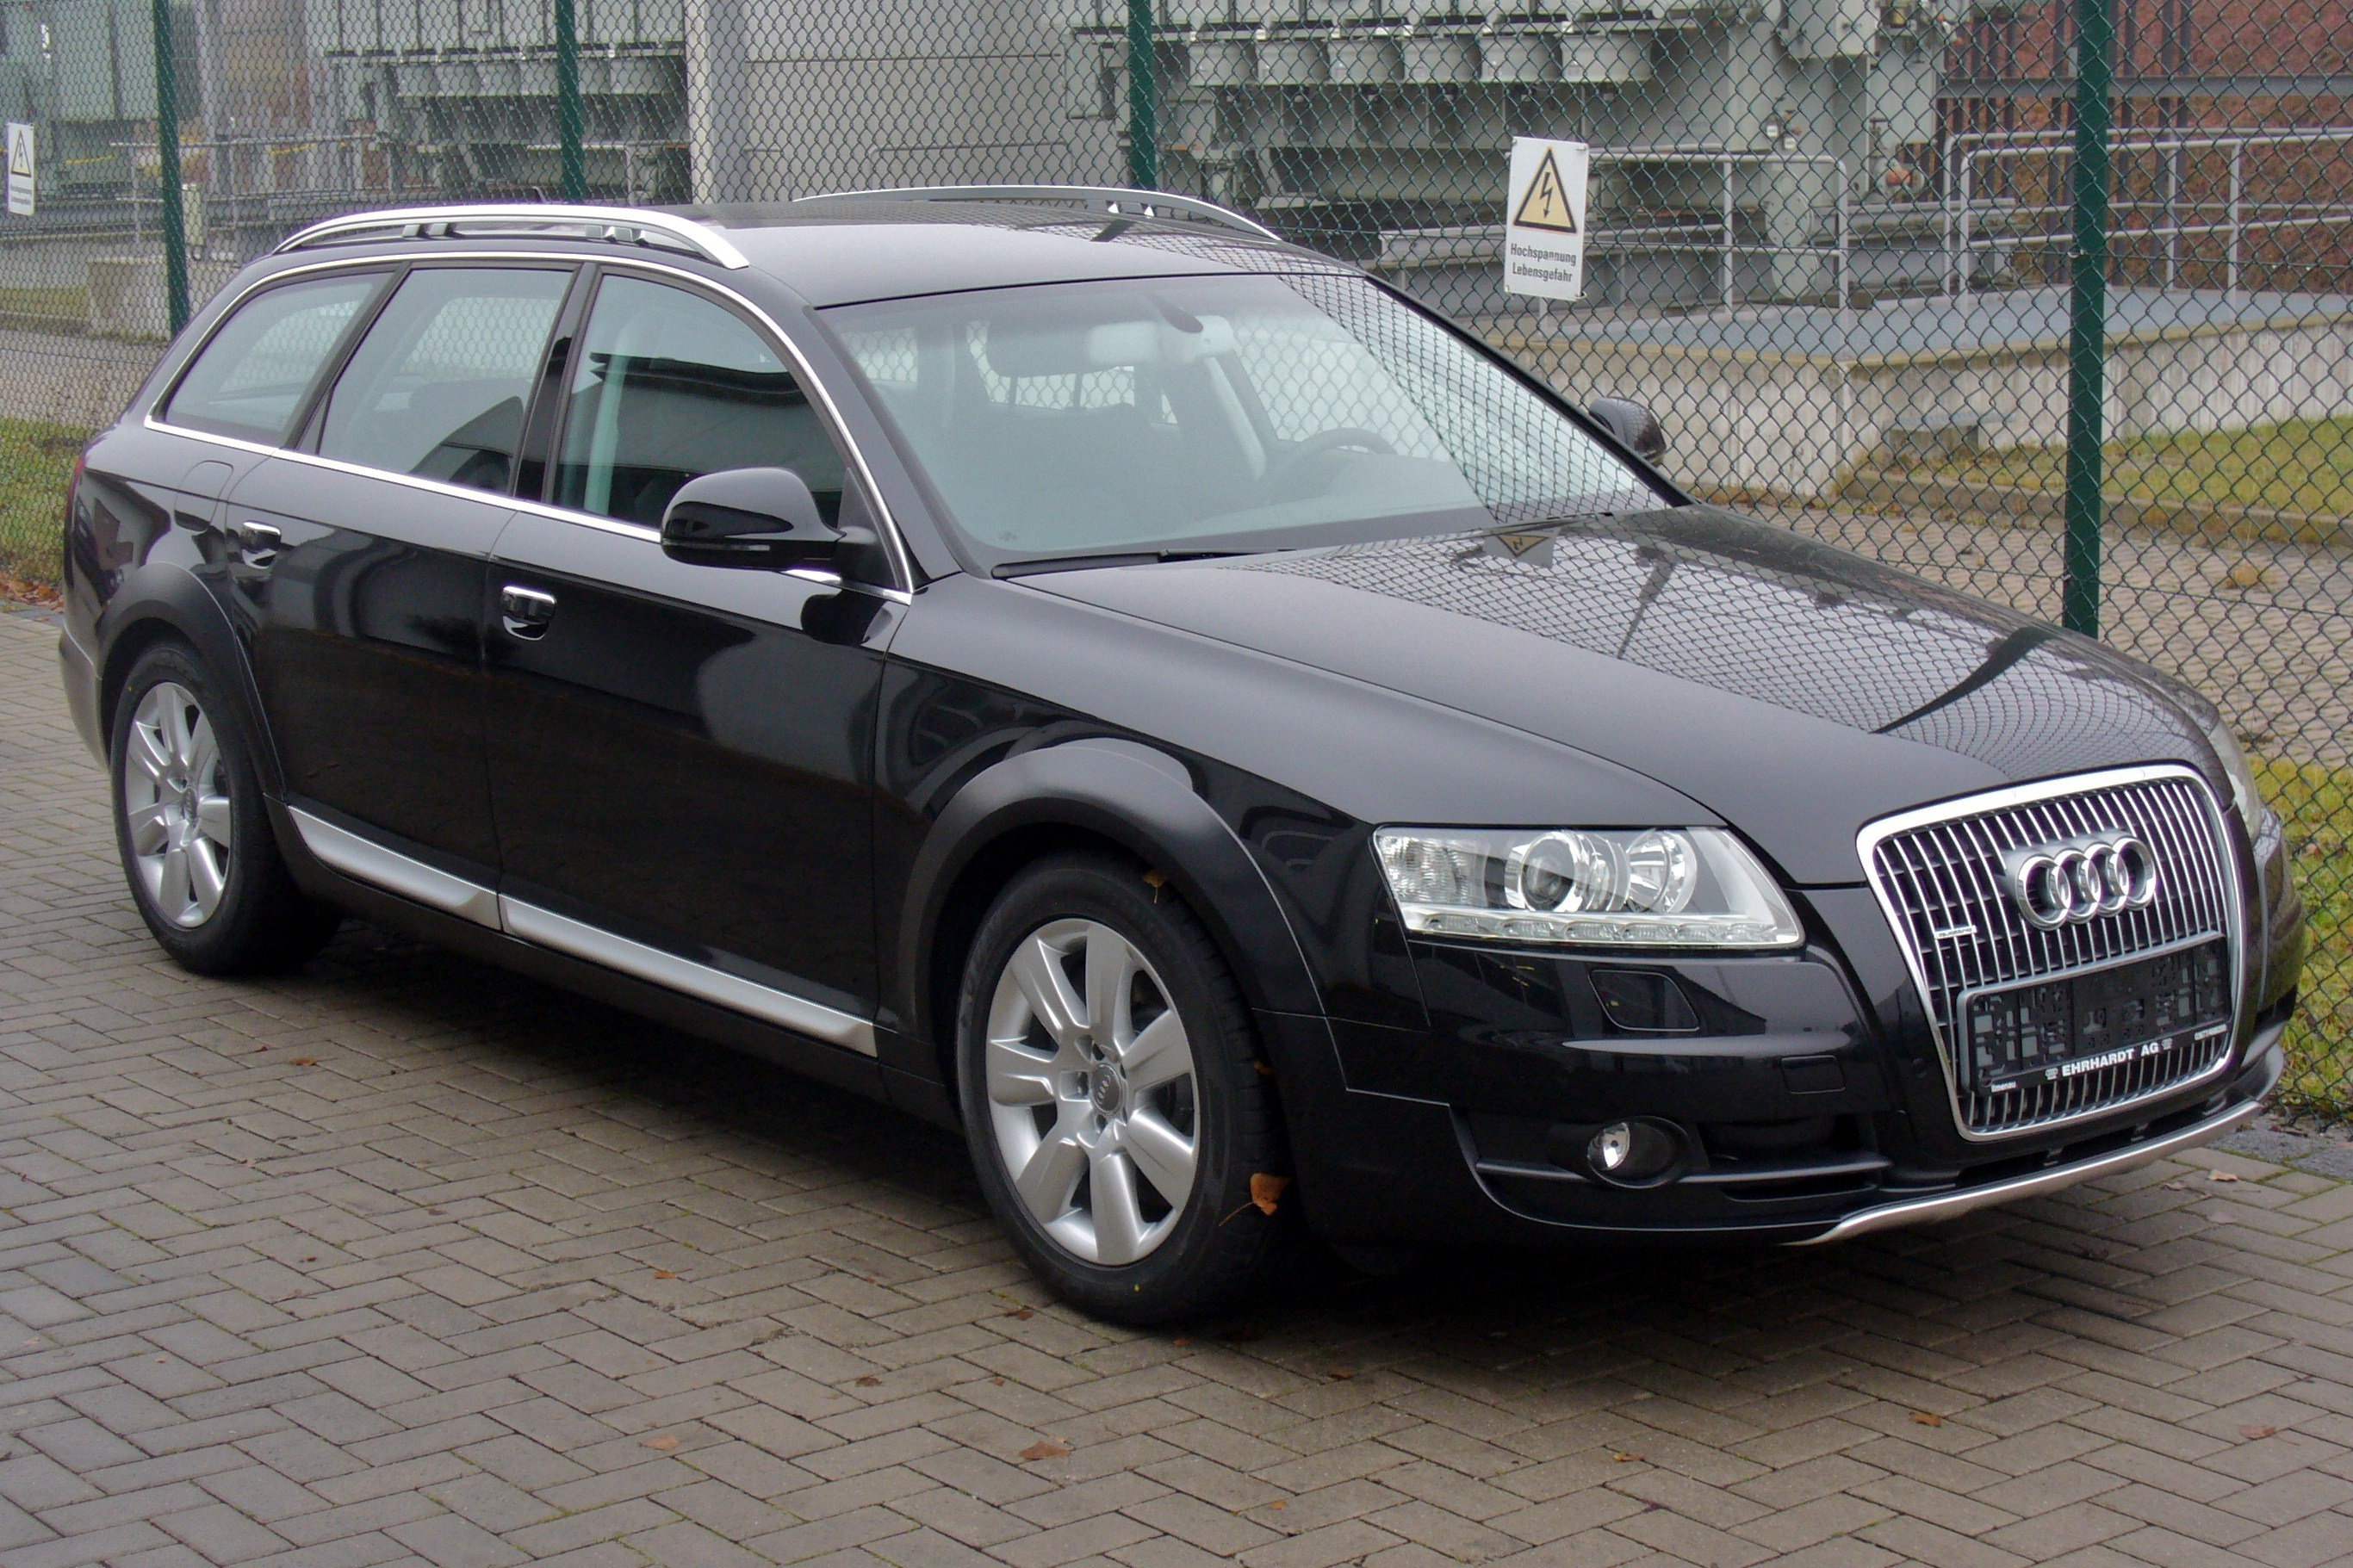 audi a6 allroad quattro 3 0 tdi technical details history. Black Bedroom Furniture Sets. Home Design Ideas